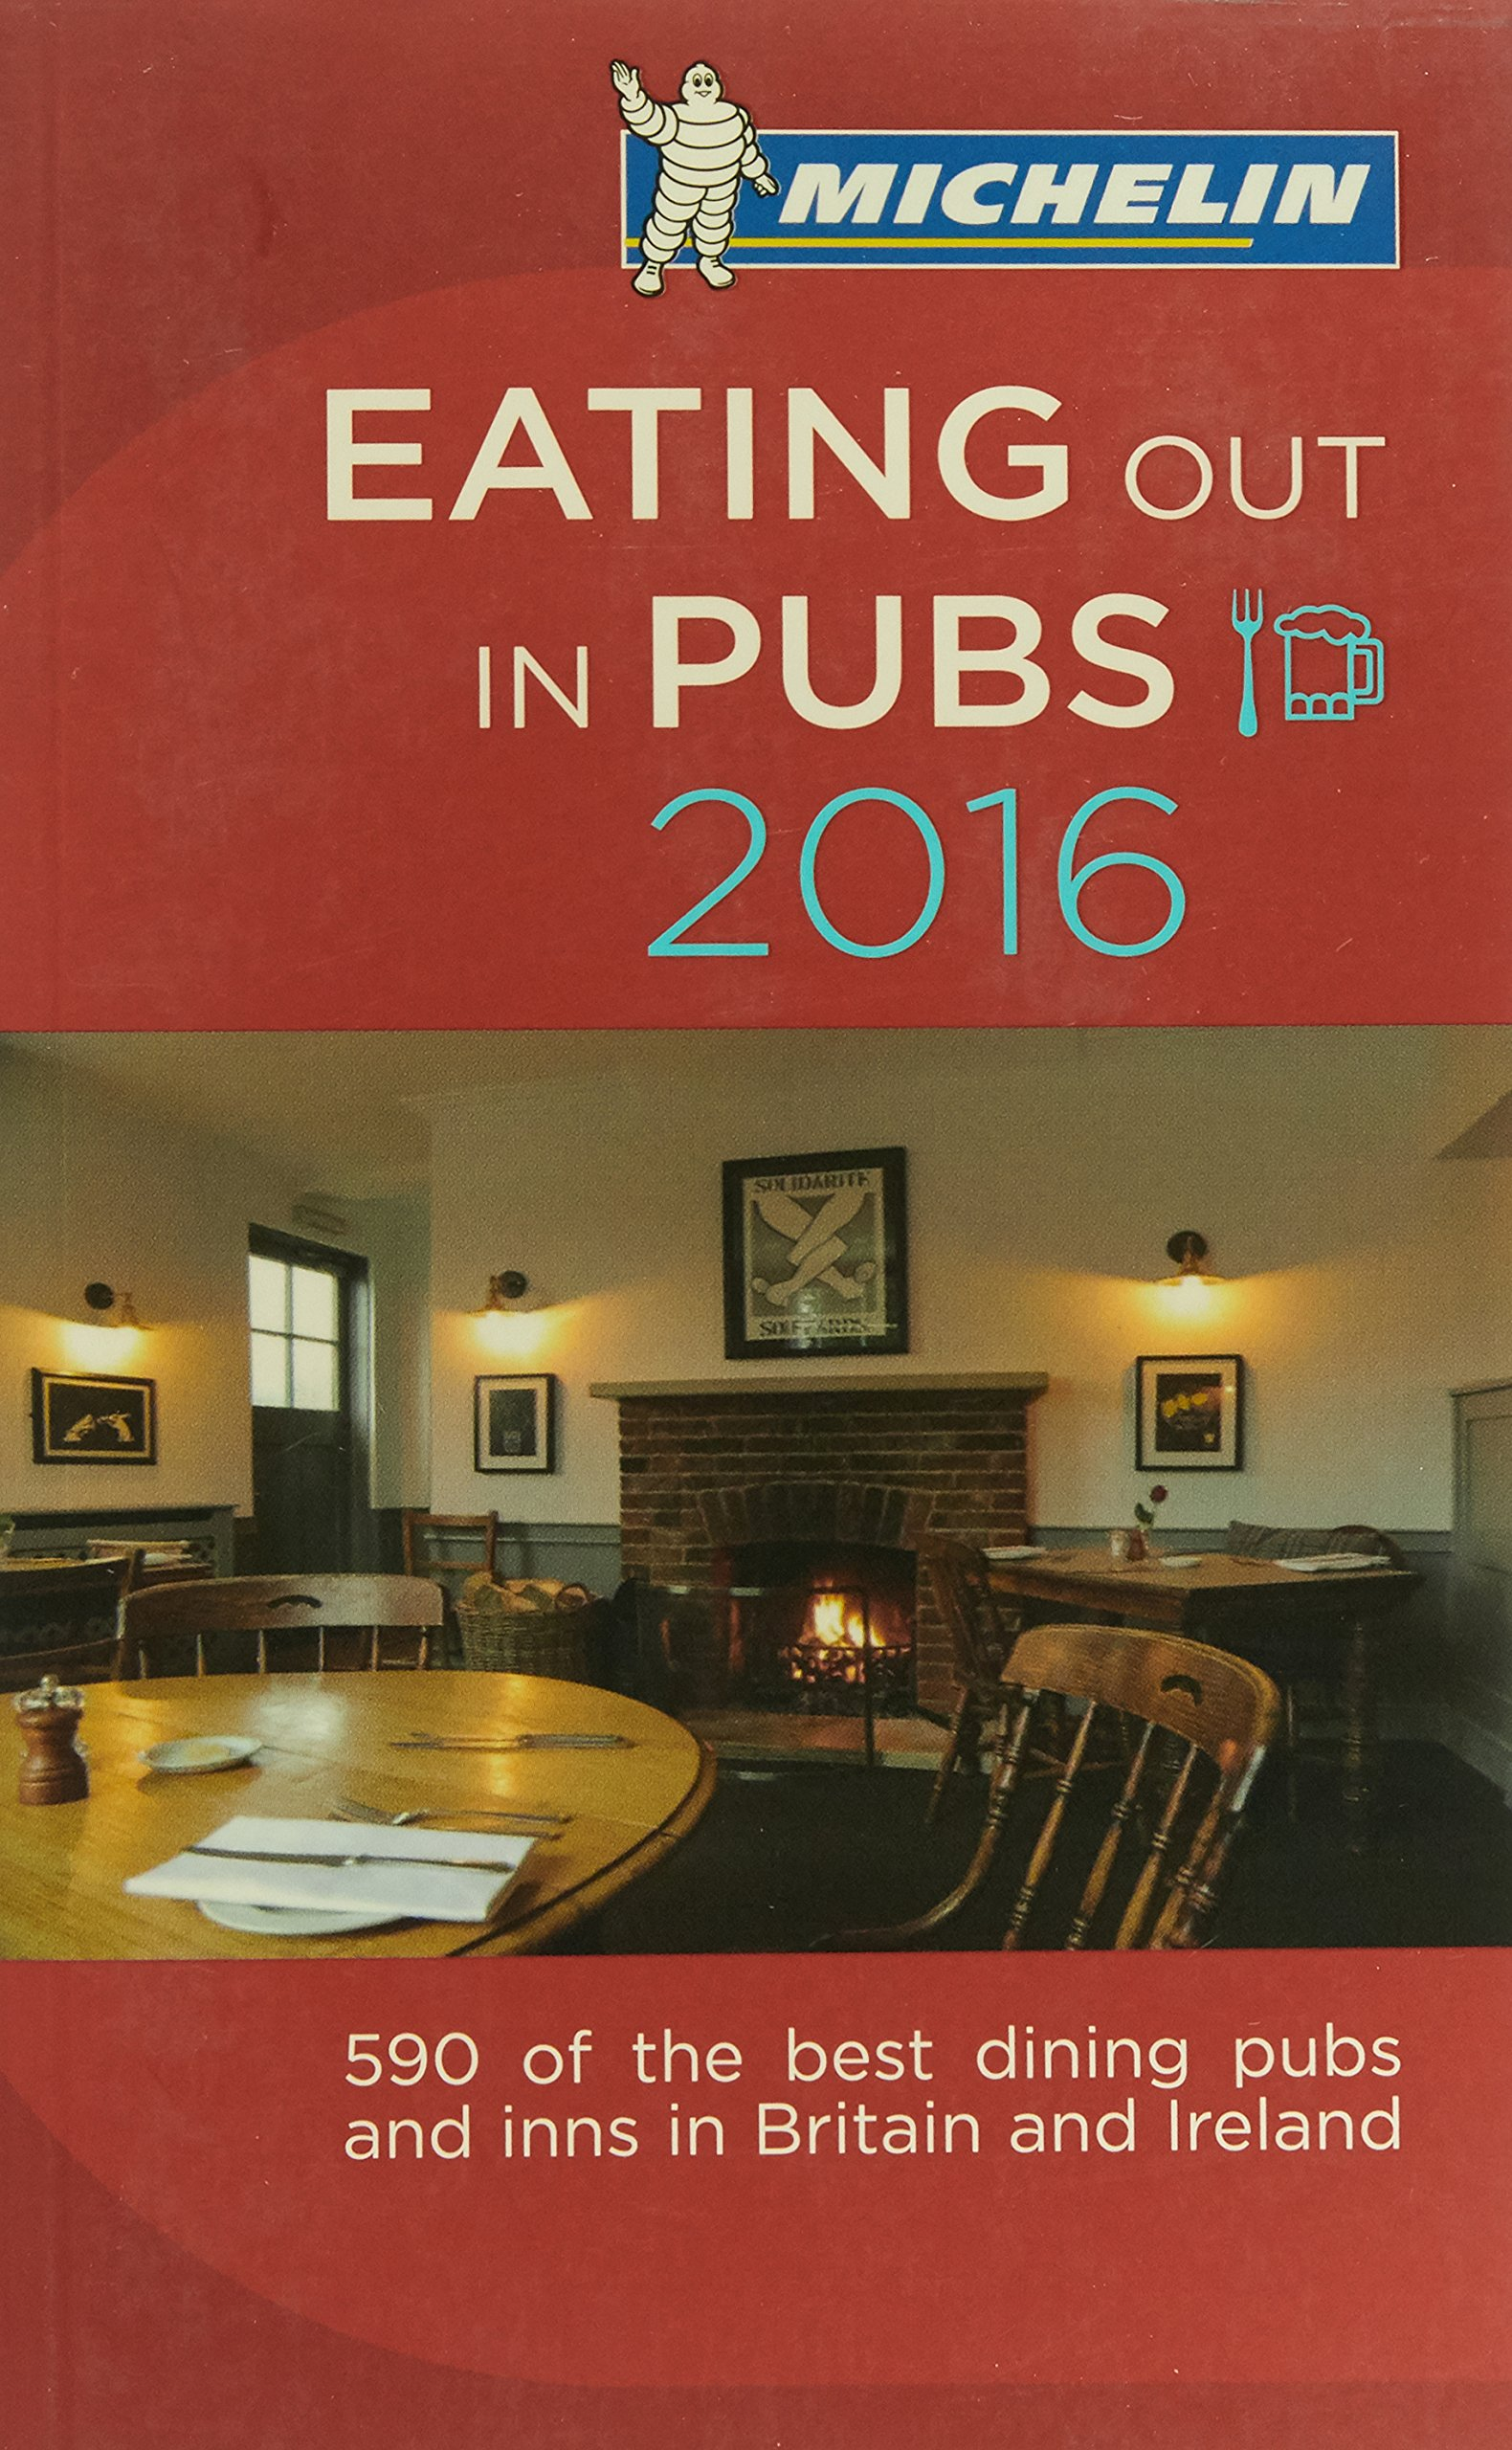 Download Michelin Eating Out in Pubs 2016: Great Britain & Ireland (Michelin Guide/Michelin) pdf epub